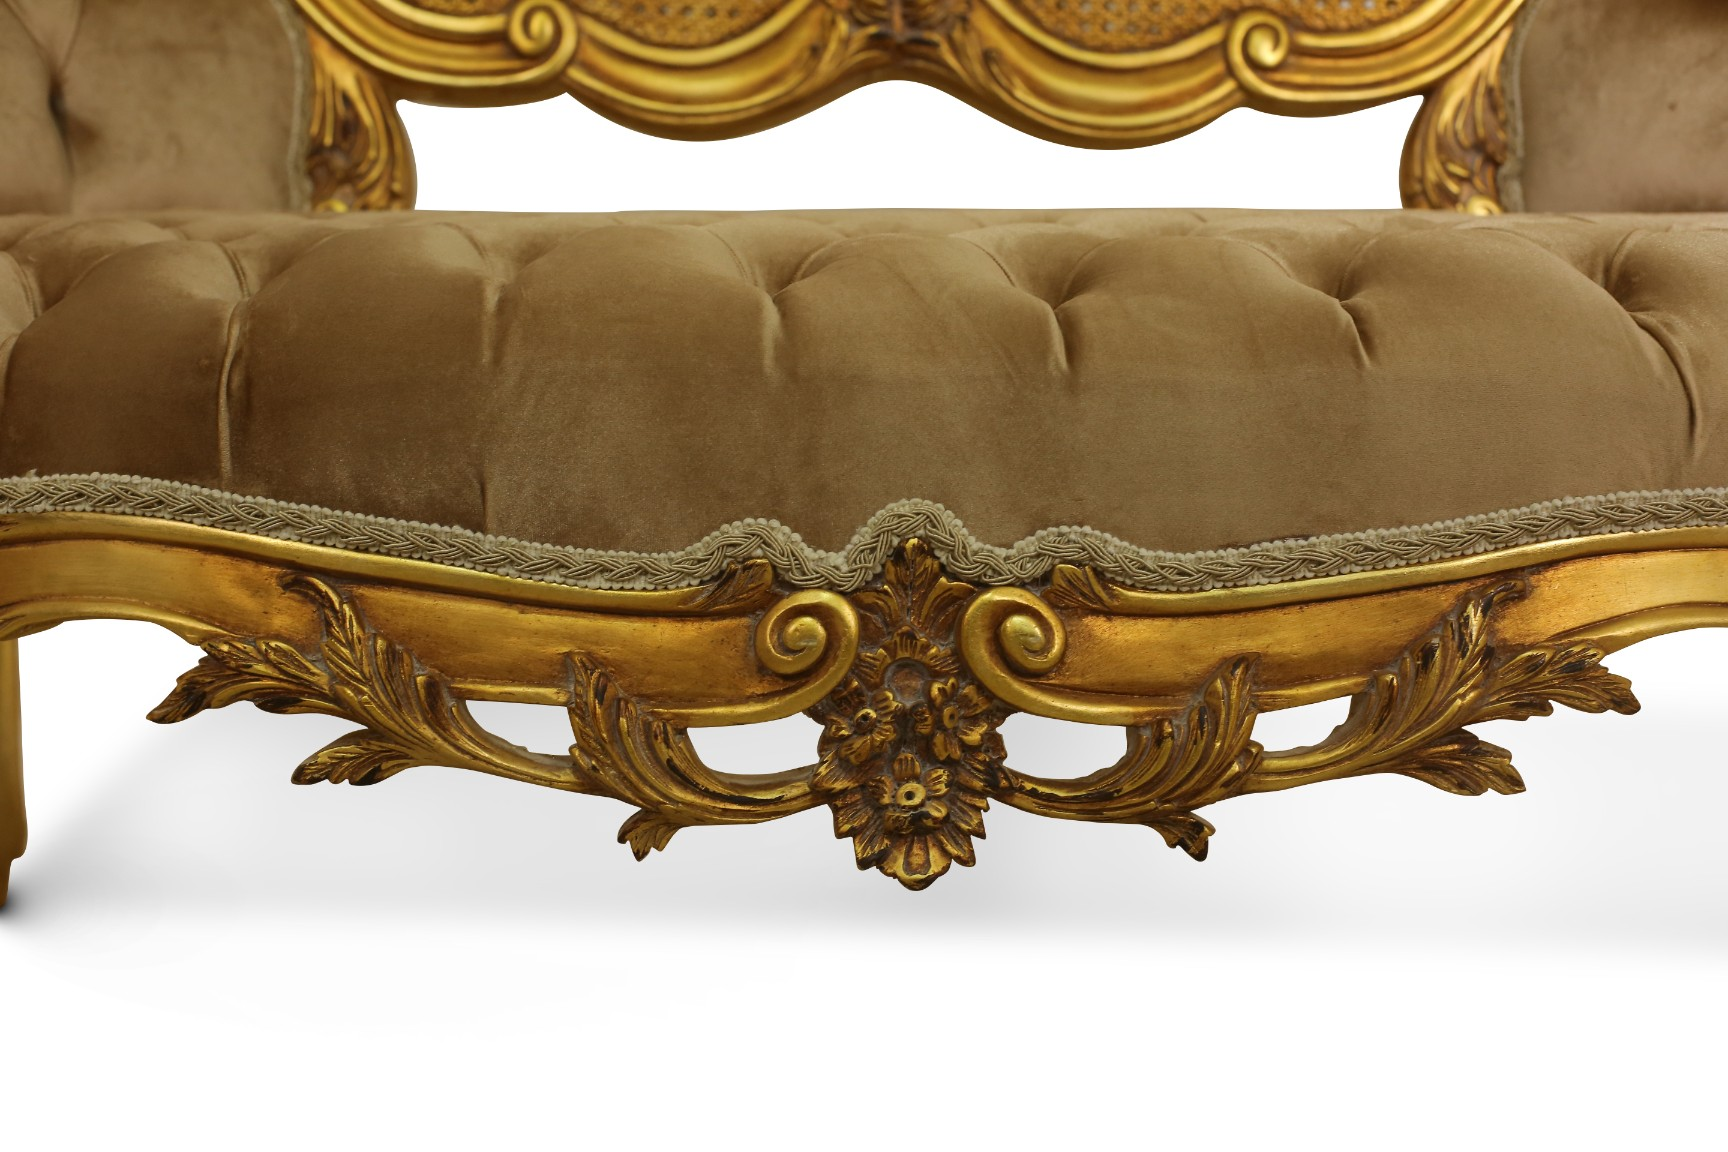 MADE TO ORDER /  French Style Cane Art ,24k Gold Leaf , Tufted Tan/ Beige Velvet , Banquette Sofa